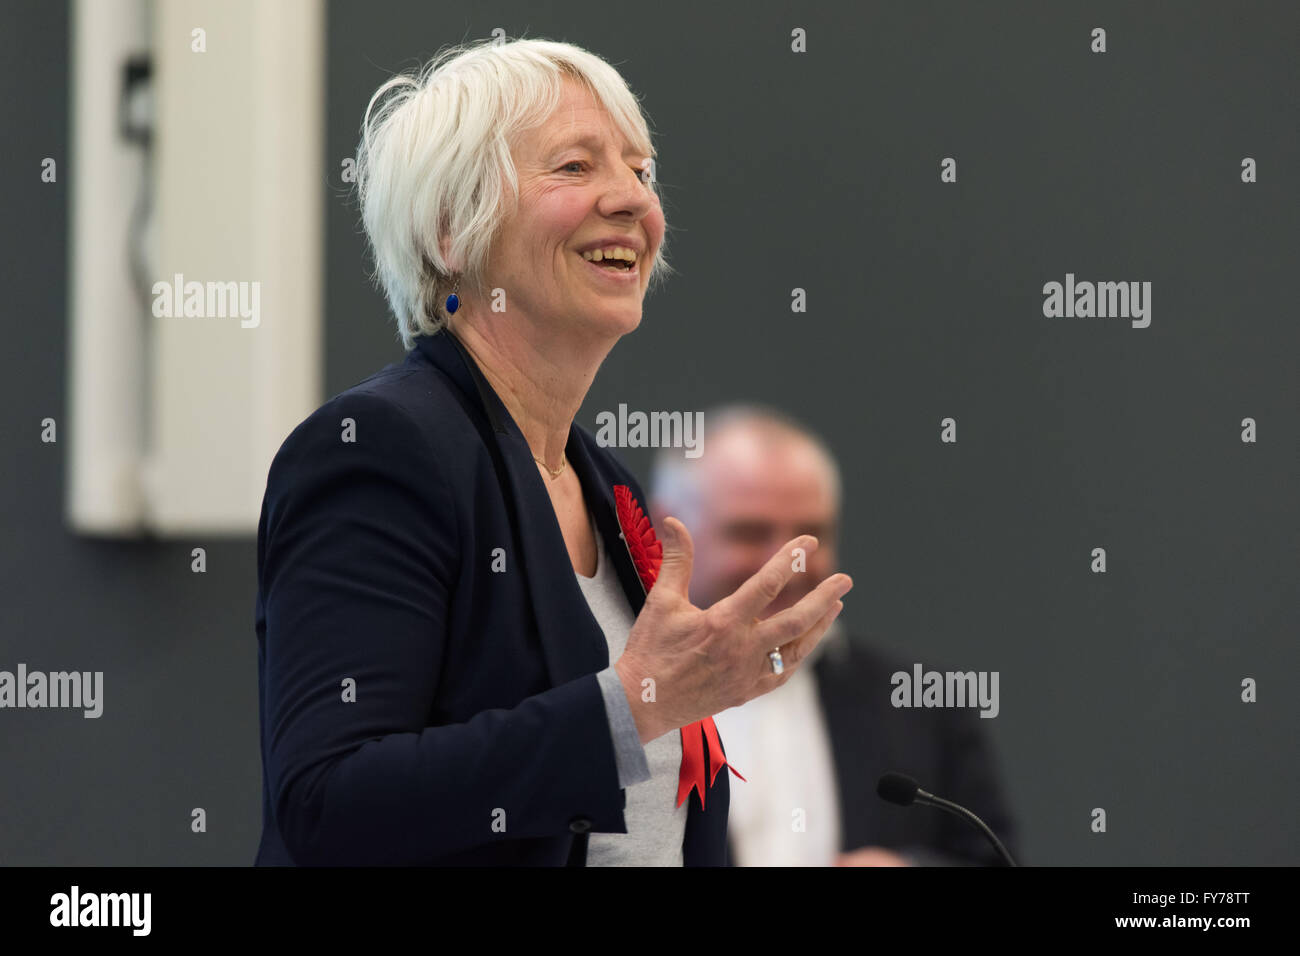 Jenny Rathbone Labour AM for Cardiff Central at the National assembly for Wales. - Stock Image